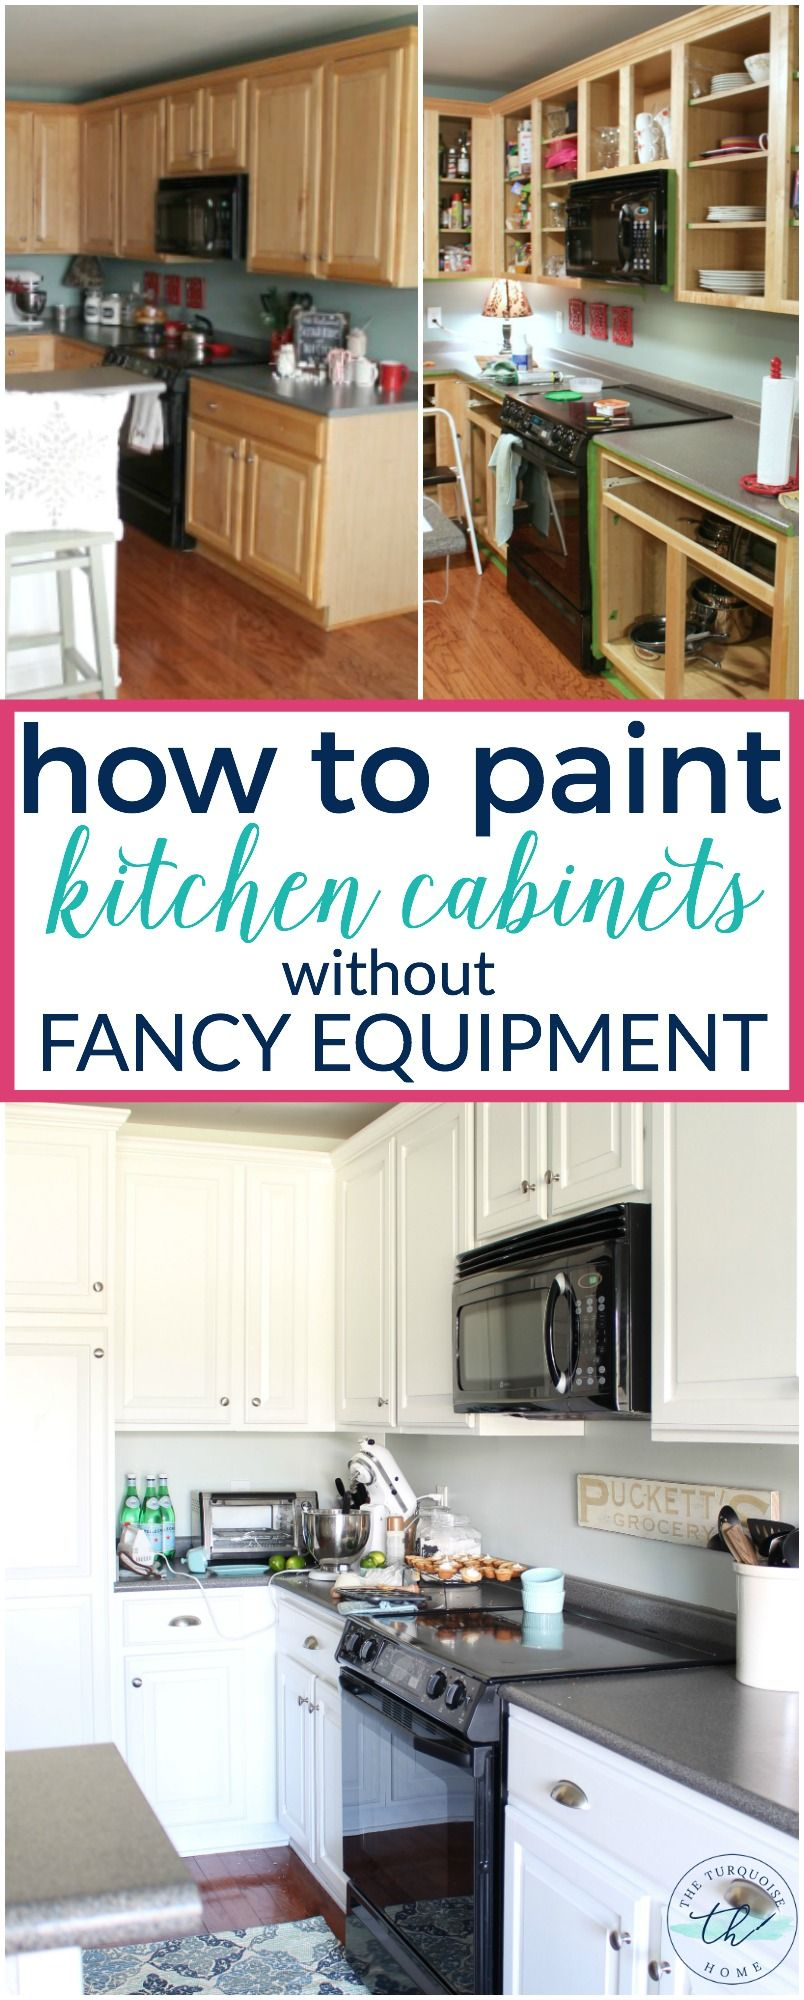 How To Paint Kitchen Cabinets Without Fancy Equipment Kitchen Cabinets Painting Kitchen Cabinets Kitchen Paint